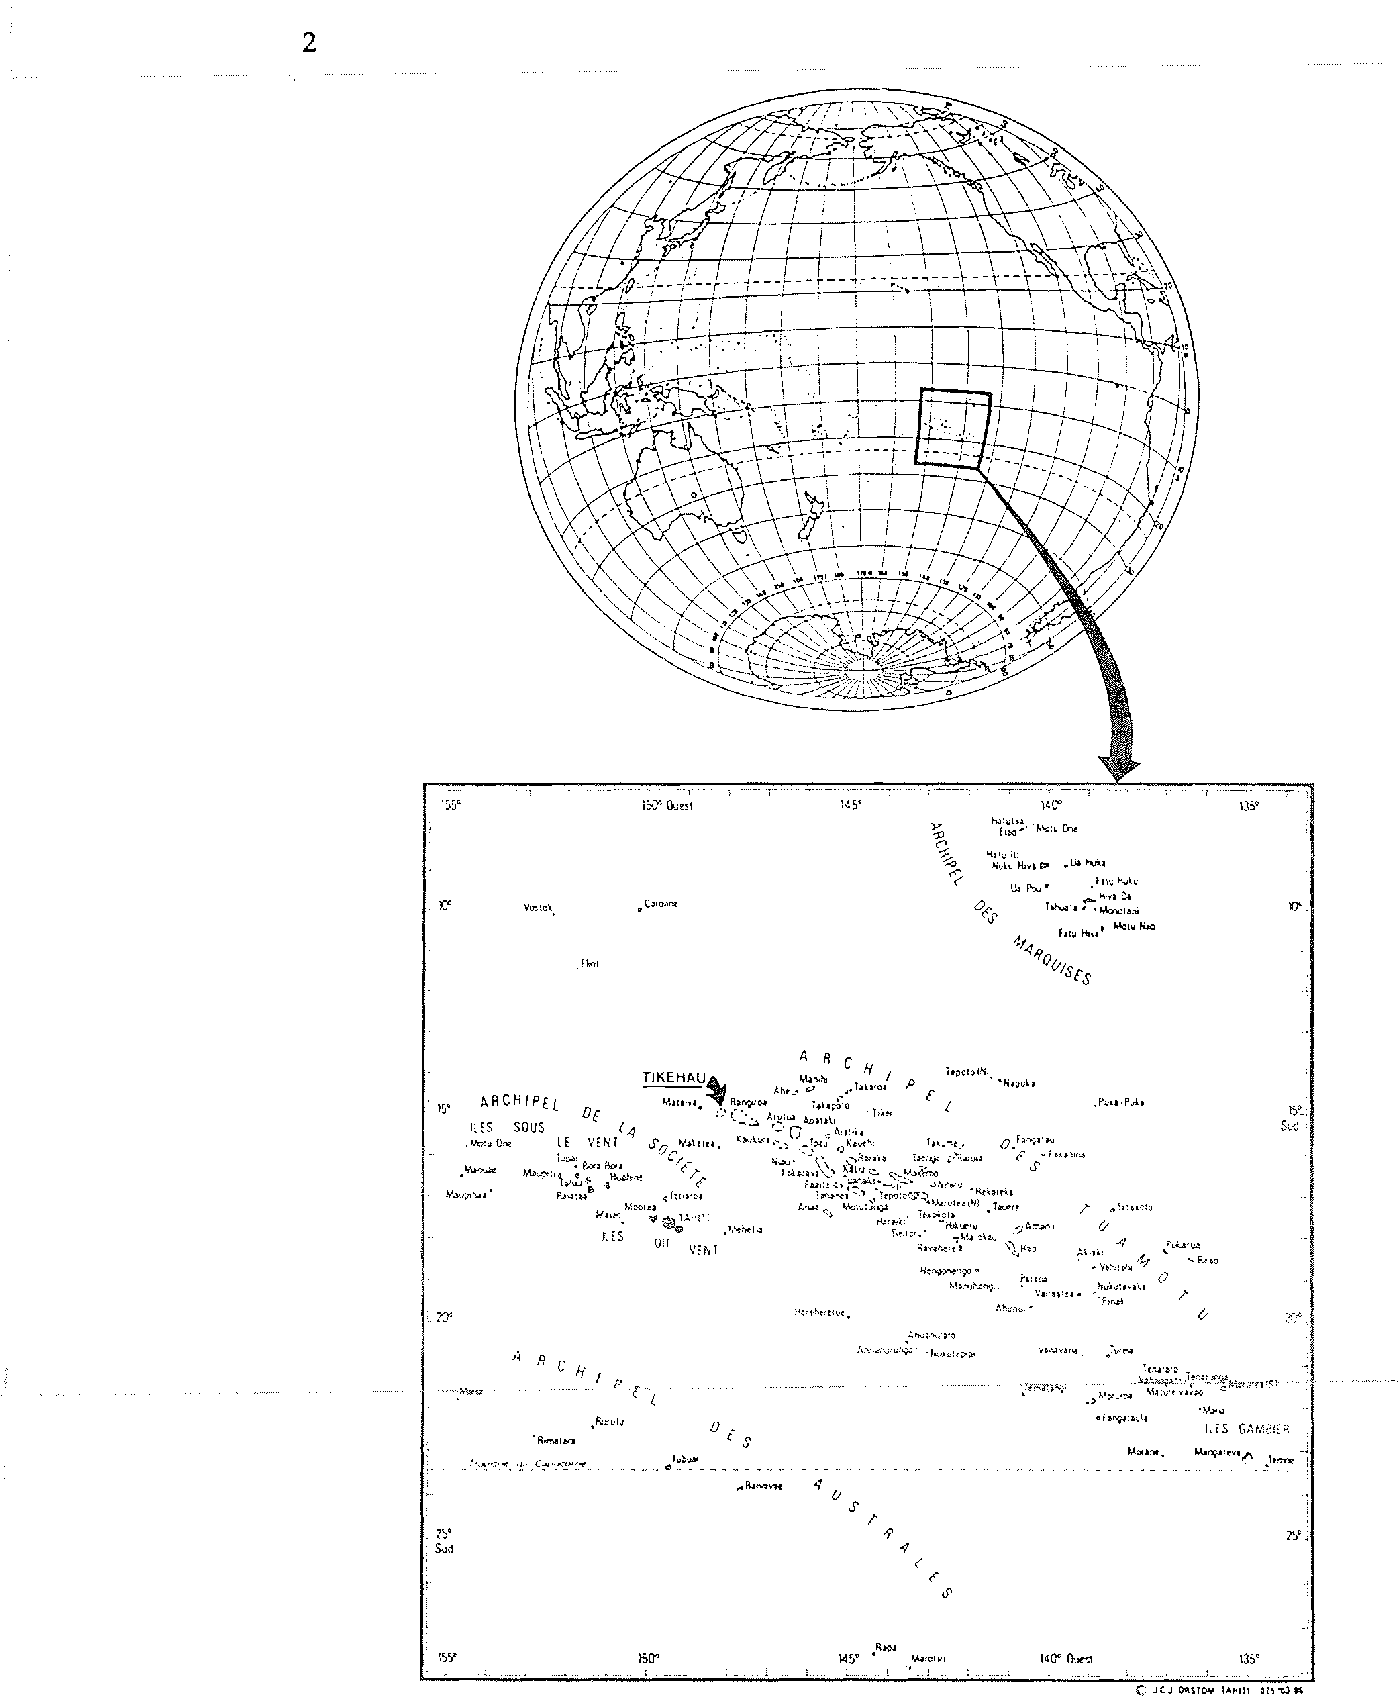 figure 1 from part i environment and biota of the tikehau atoll Ancient Polynesia Map 1 map of french polynesia and location of the tikehau atoll tuarnotu